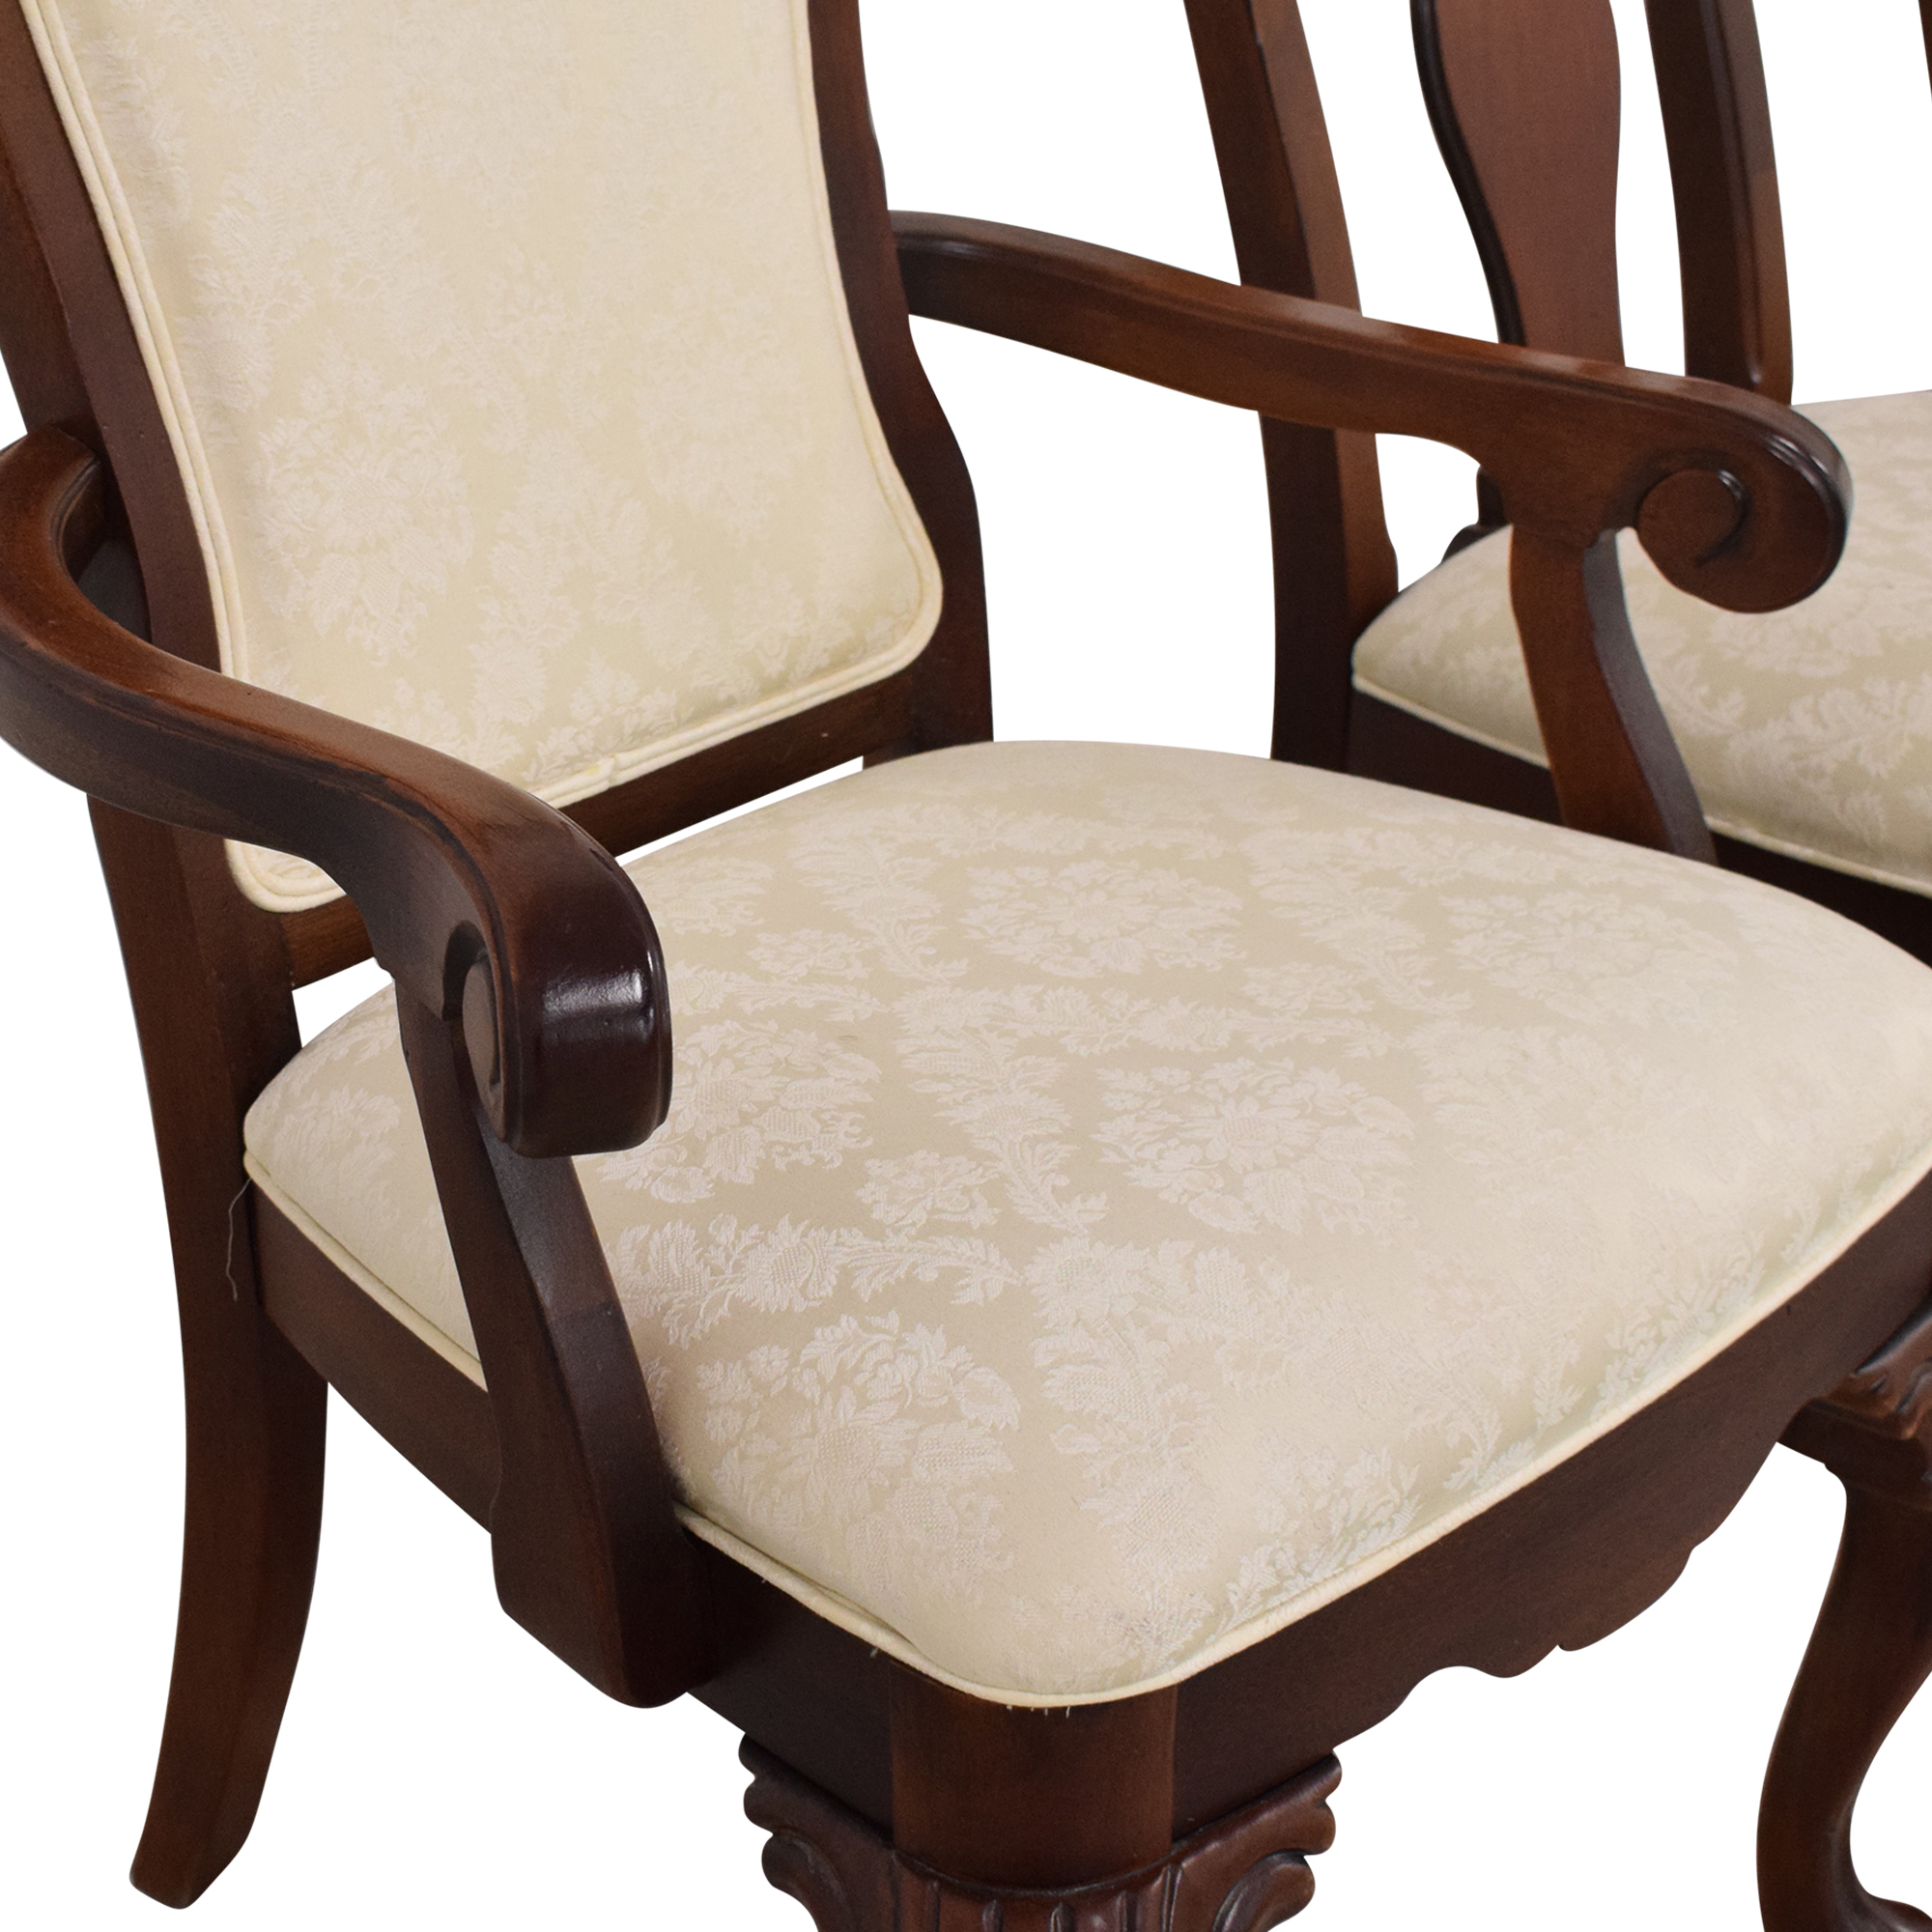 buy Thomasville Thomasville Upholstered Dining Chairs online